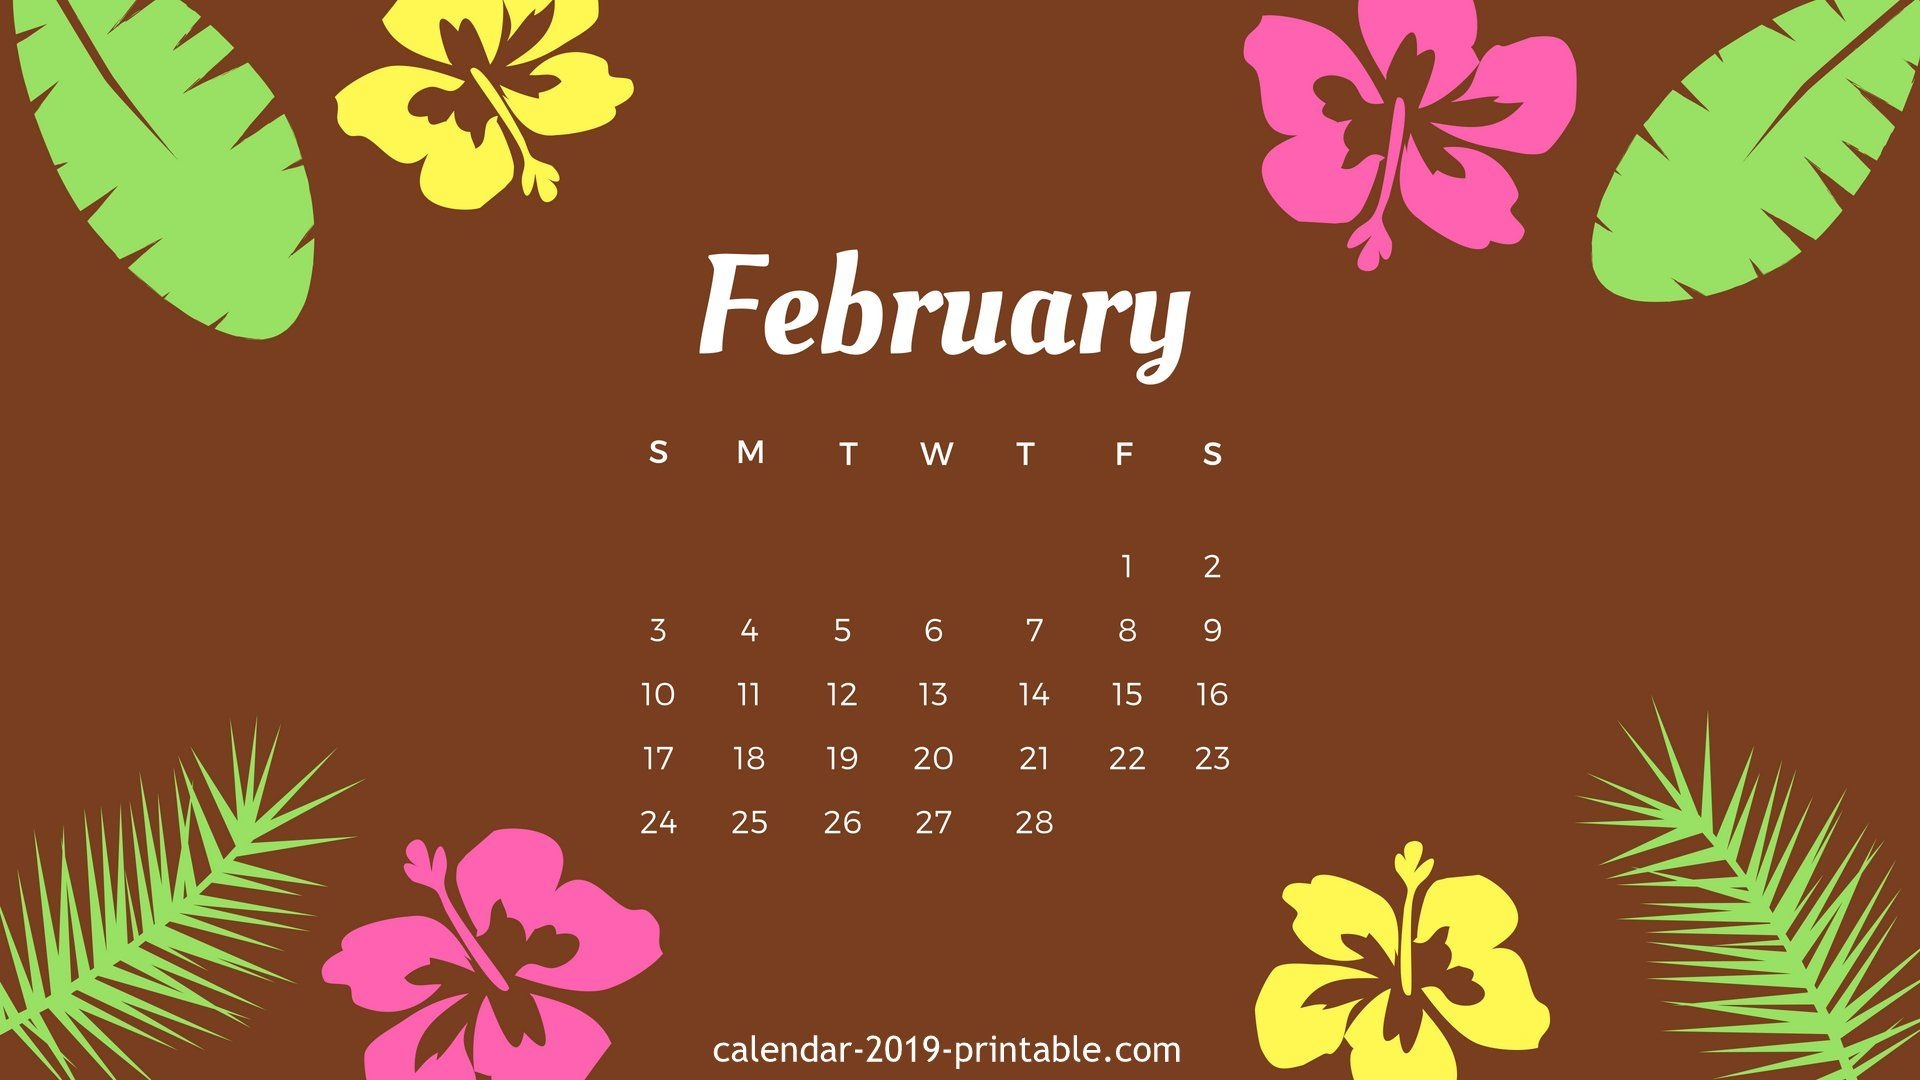 february 2019 hd desktop wallpaper calendar 2019 wallpapers::February 2019 iPhone Calendar Wallpaper